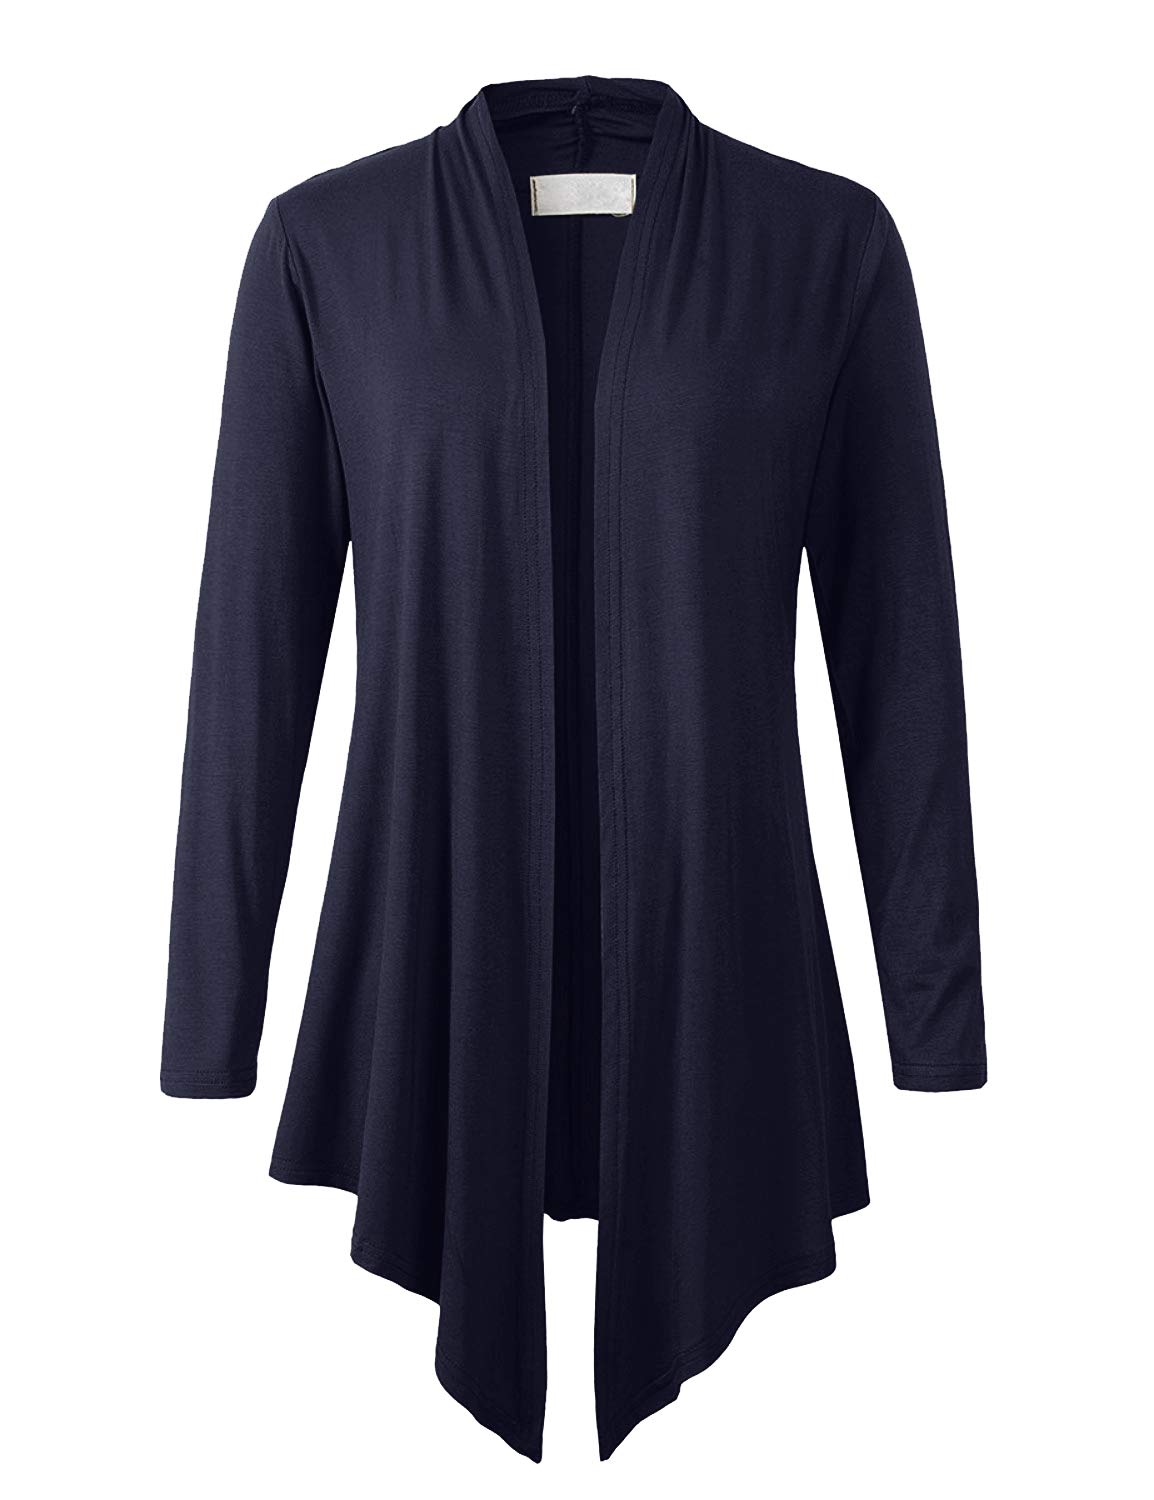 Eanklosco Women Open Front Cardigan Plus Size Drape Long Sleeve Coat (Navy Blue, XL)